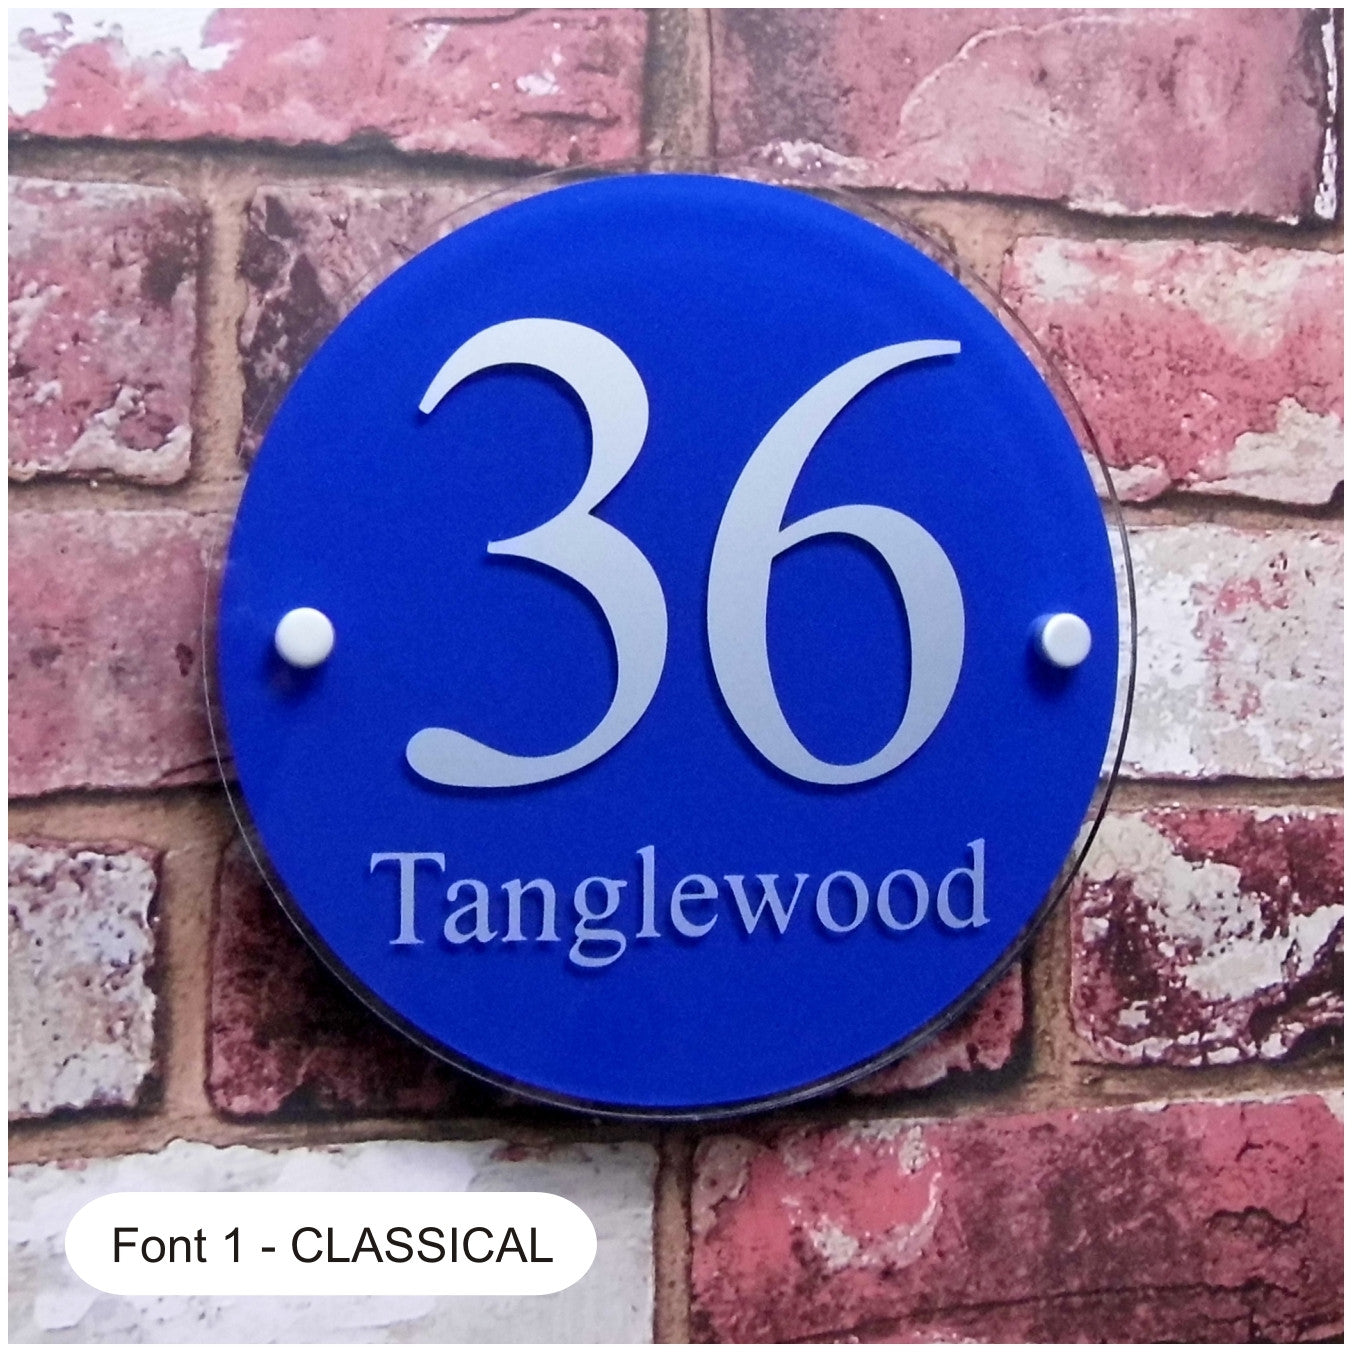 7451fdf64194 Large Round House Sign, Address Plaque or Door Number Plate - House Sign  Solutions